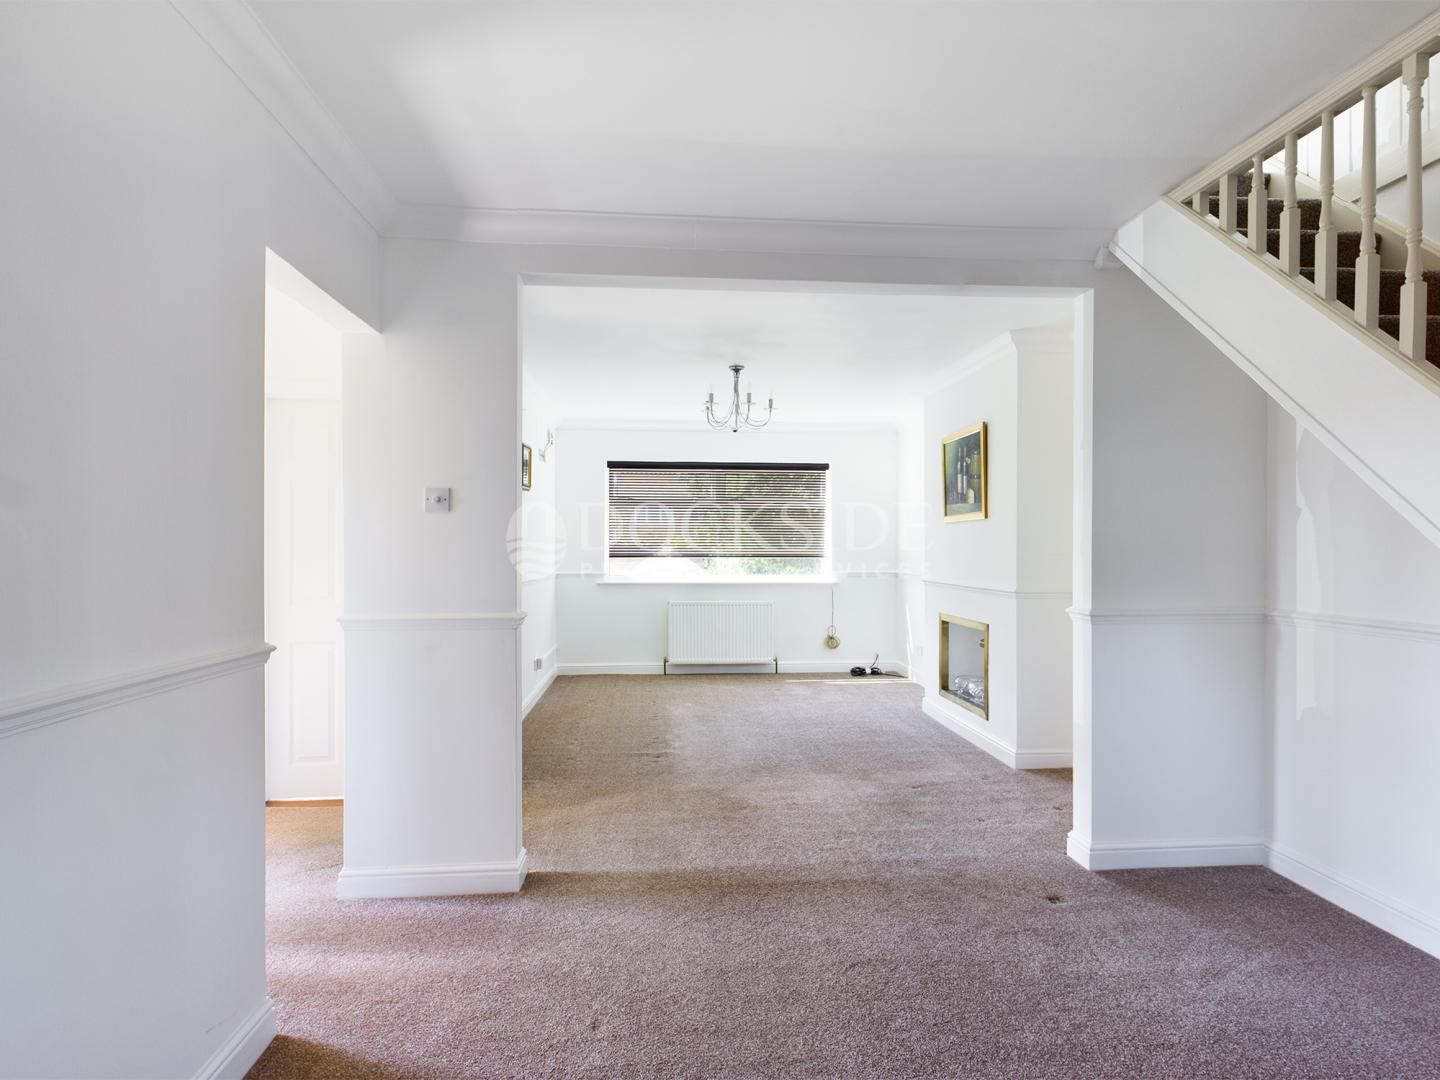 3 bed house for sale in Sharfleet Drive  - Property Image 1